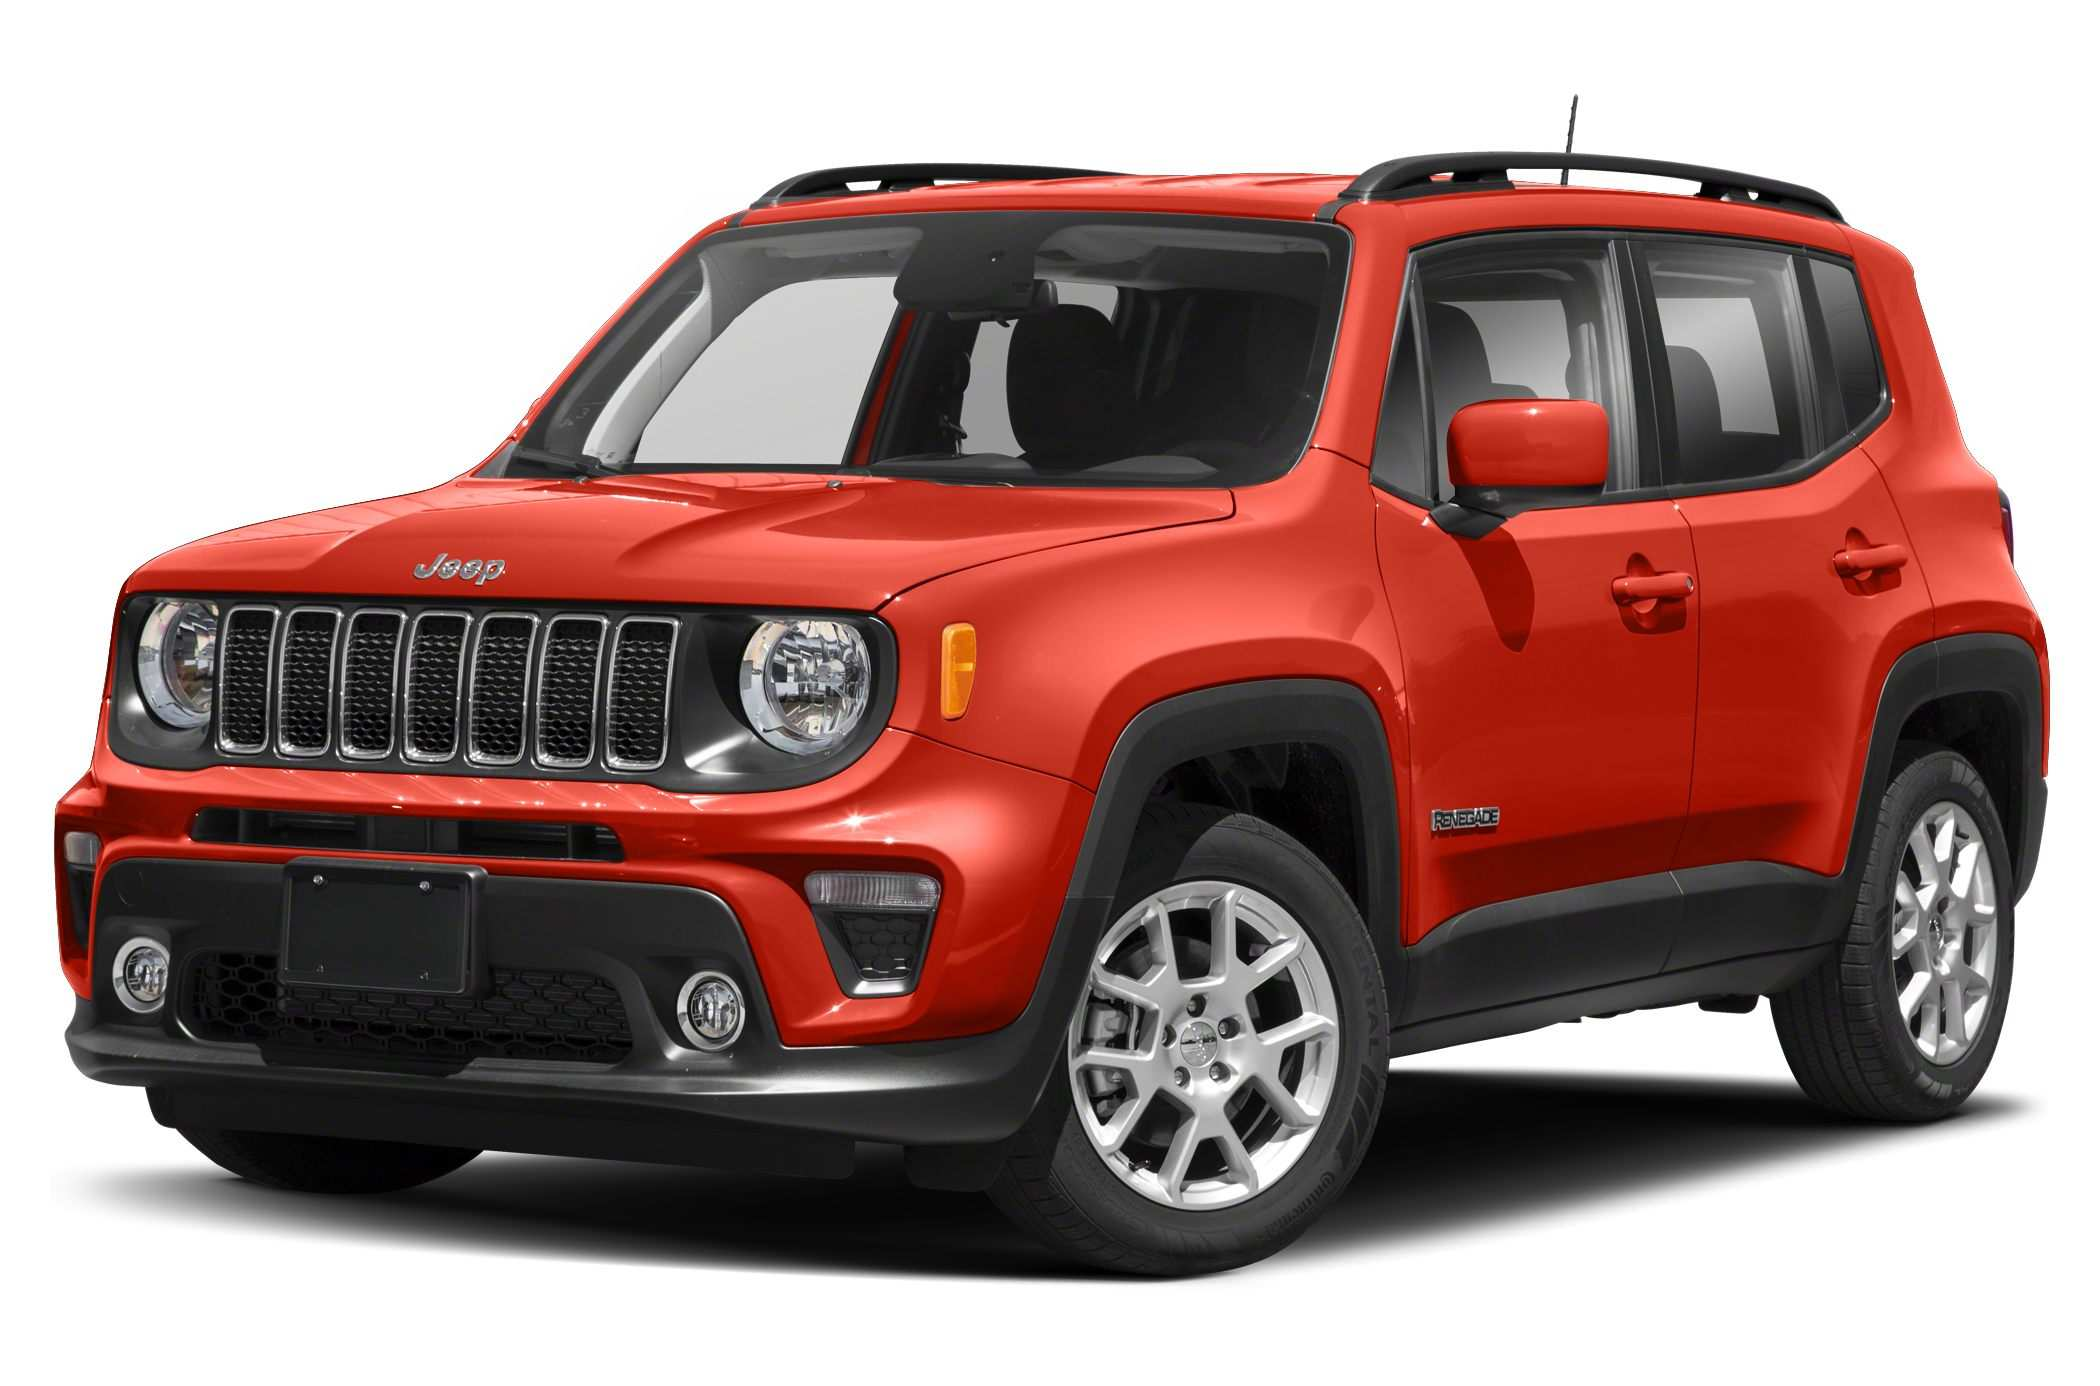 33 All New Jeep Renegade 2020 Rumors